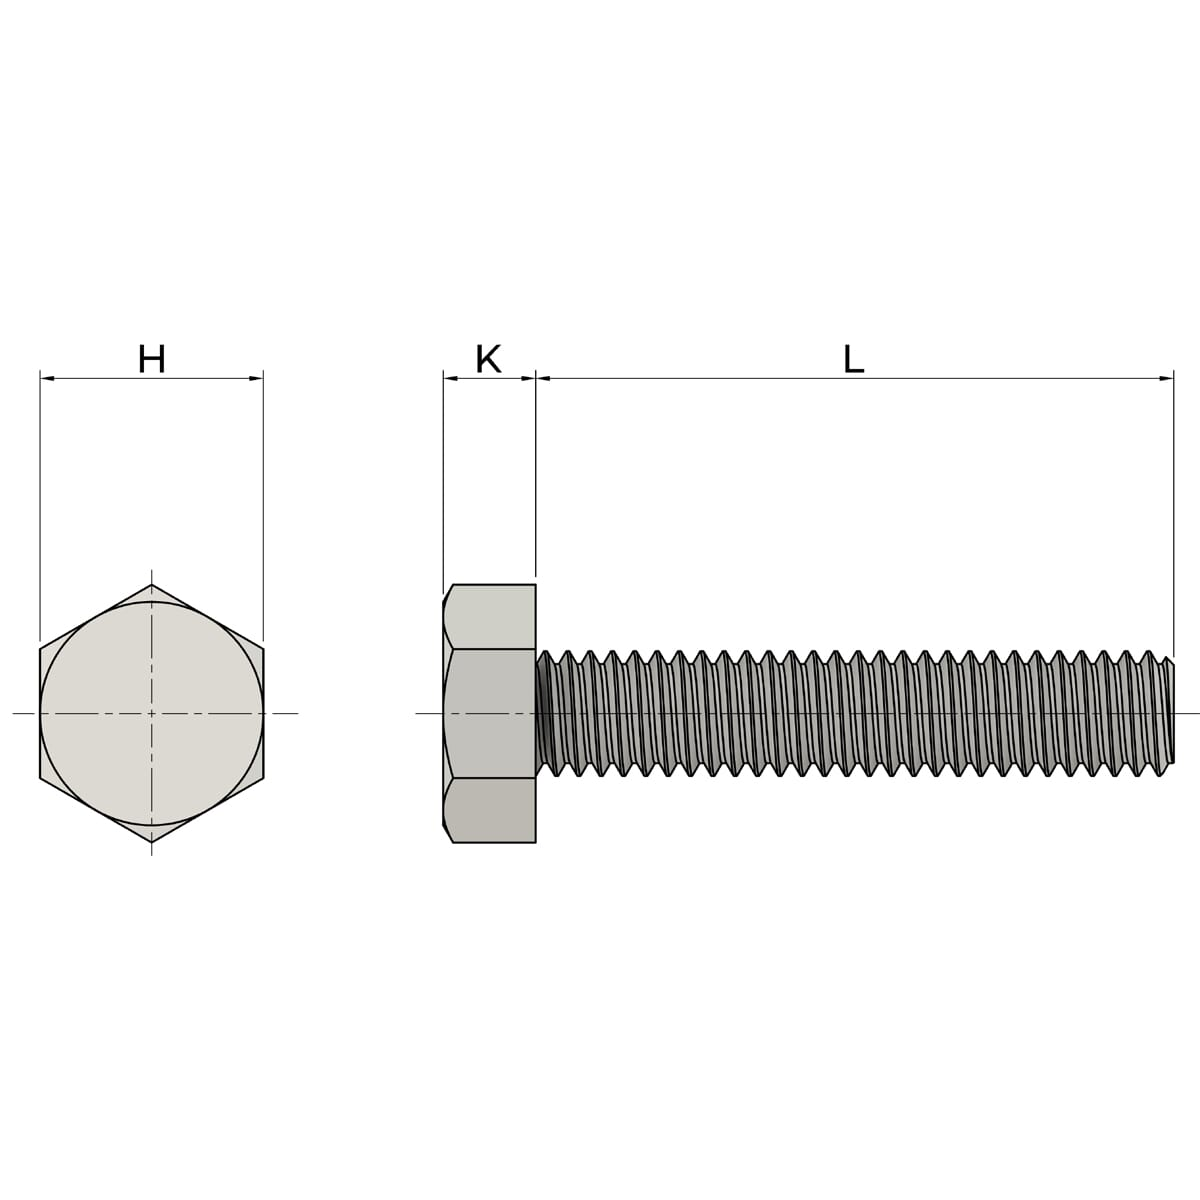 M10 x 120mm Full Thread Hexagon Bolts (DIN 933) - High Tensile Stainless Steel (A4-80) Drawing